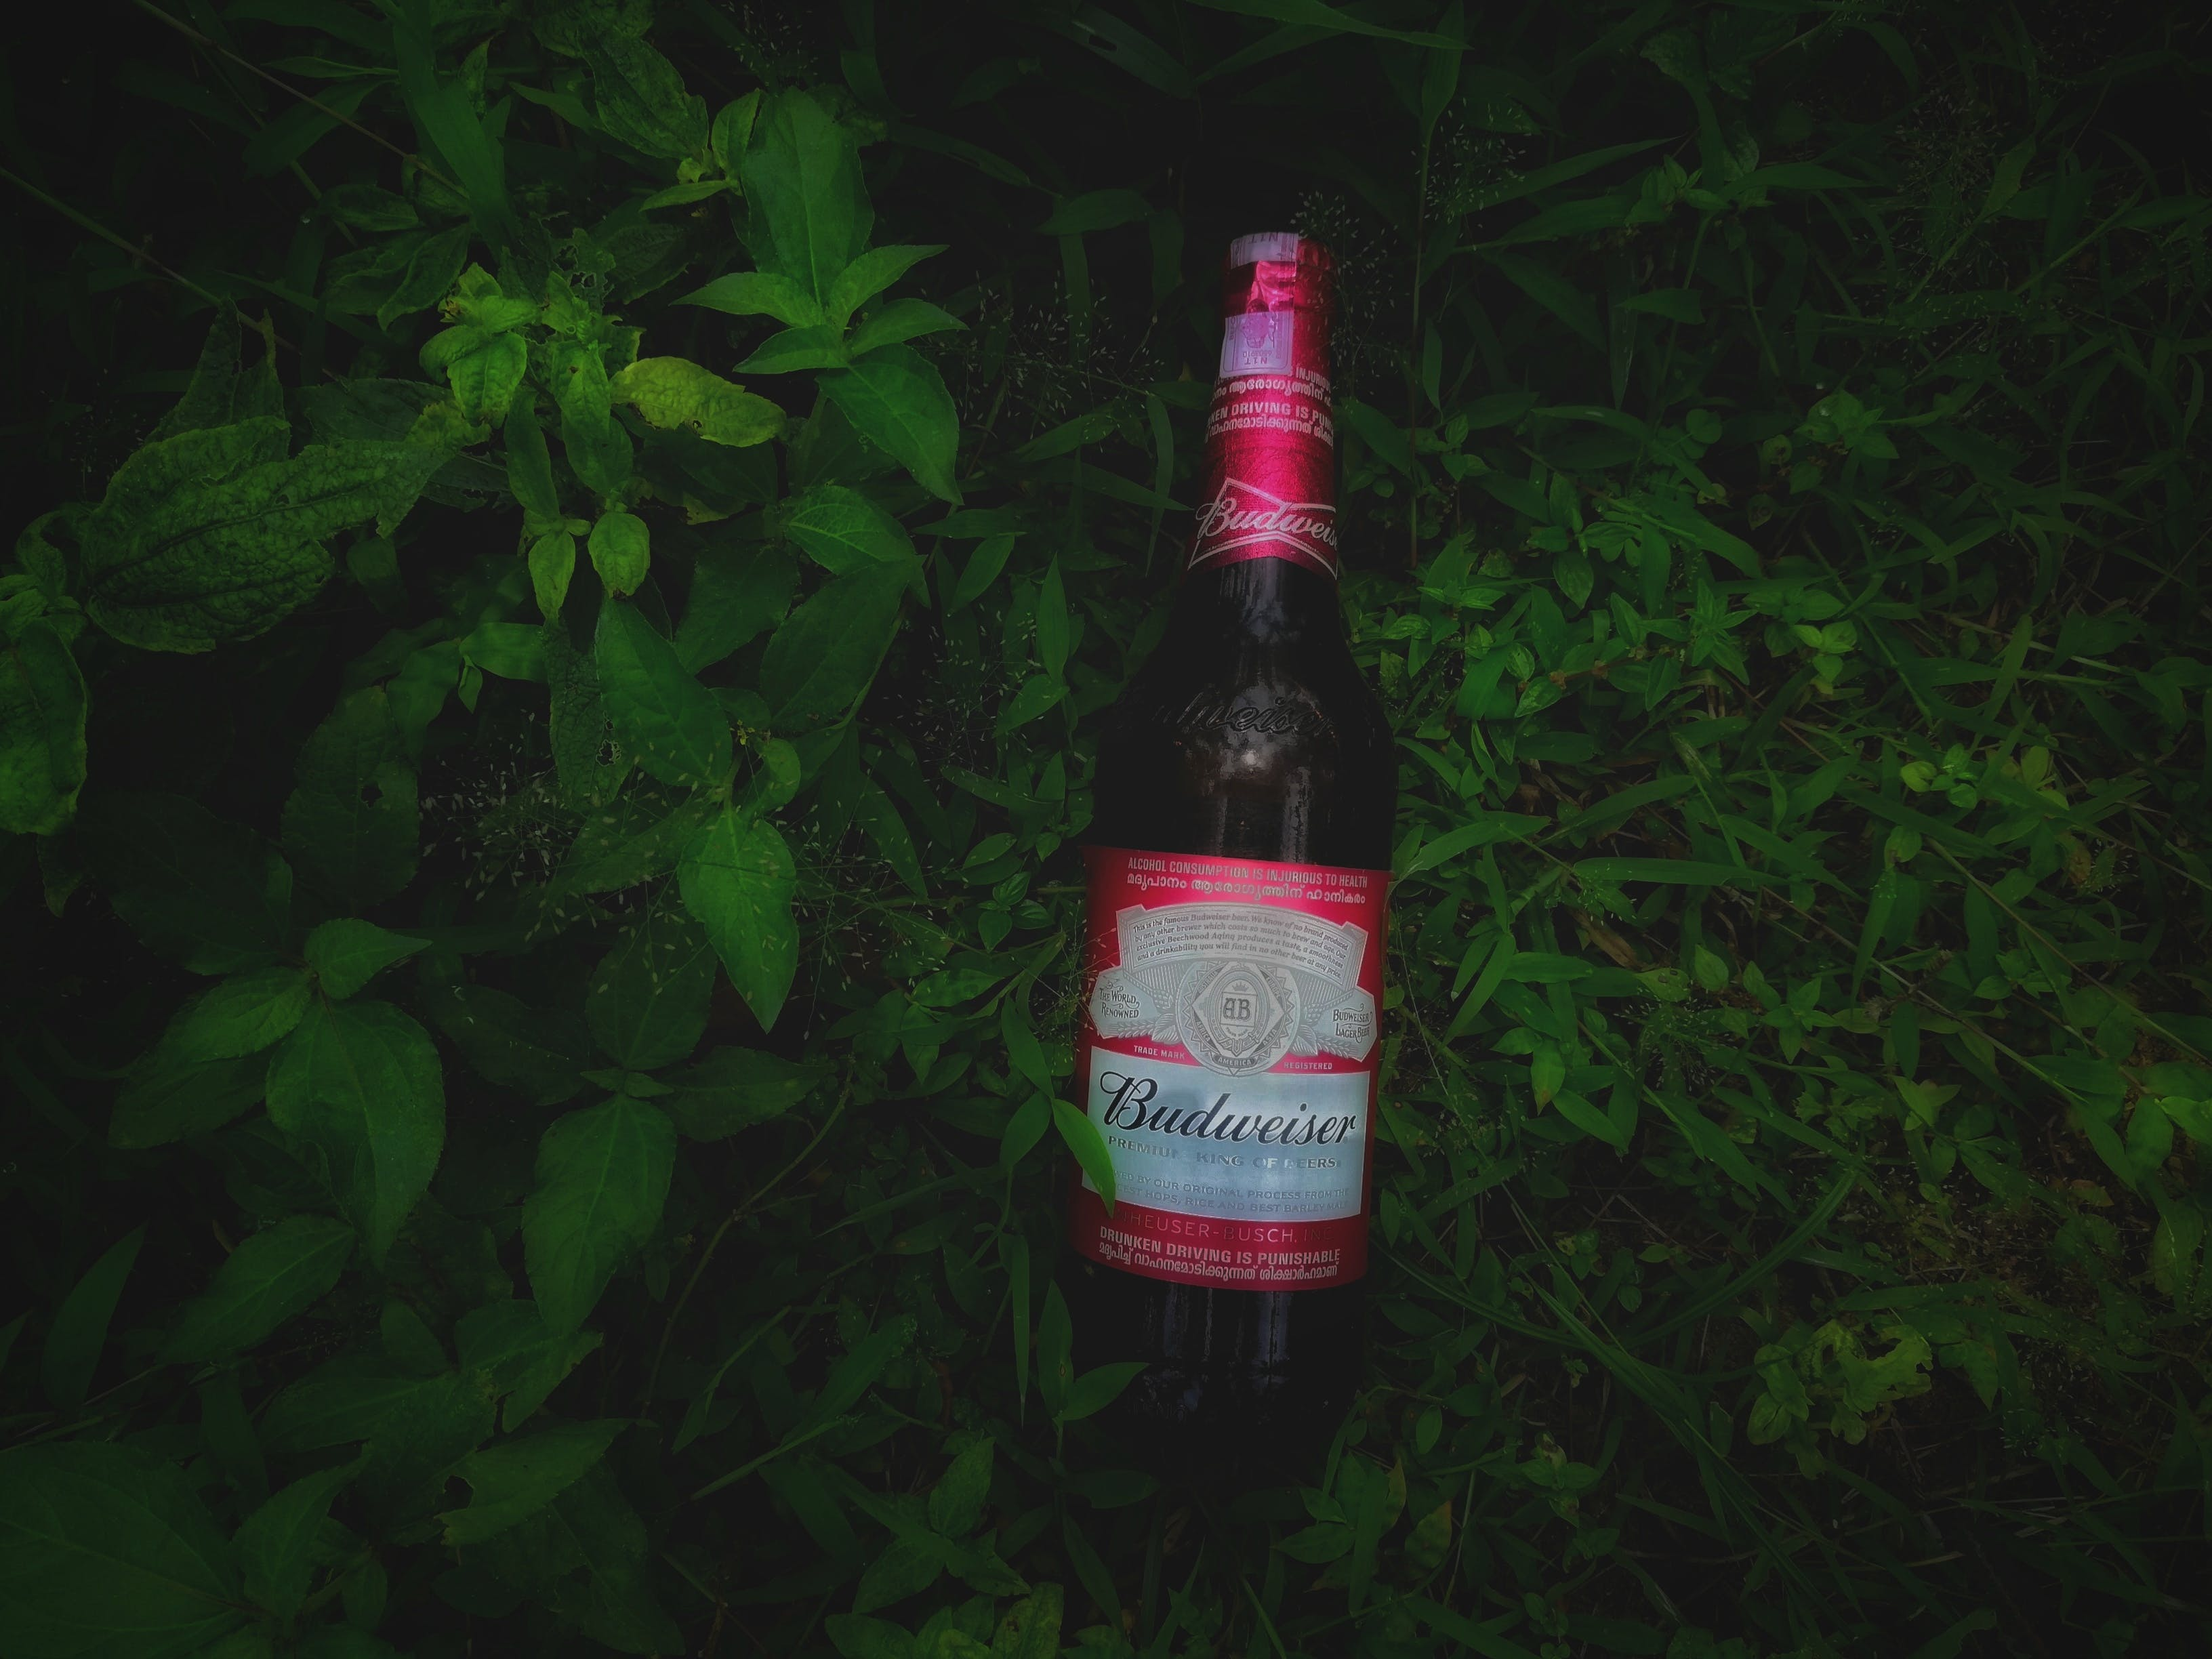 Free stock photo of beer, beer bottle, bottle, budweiser